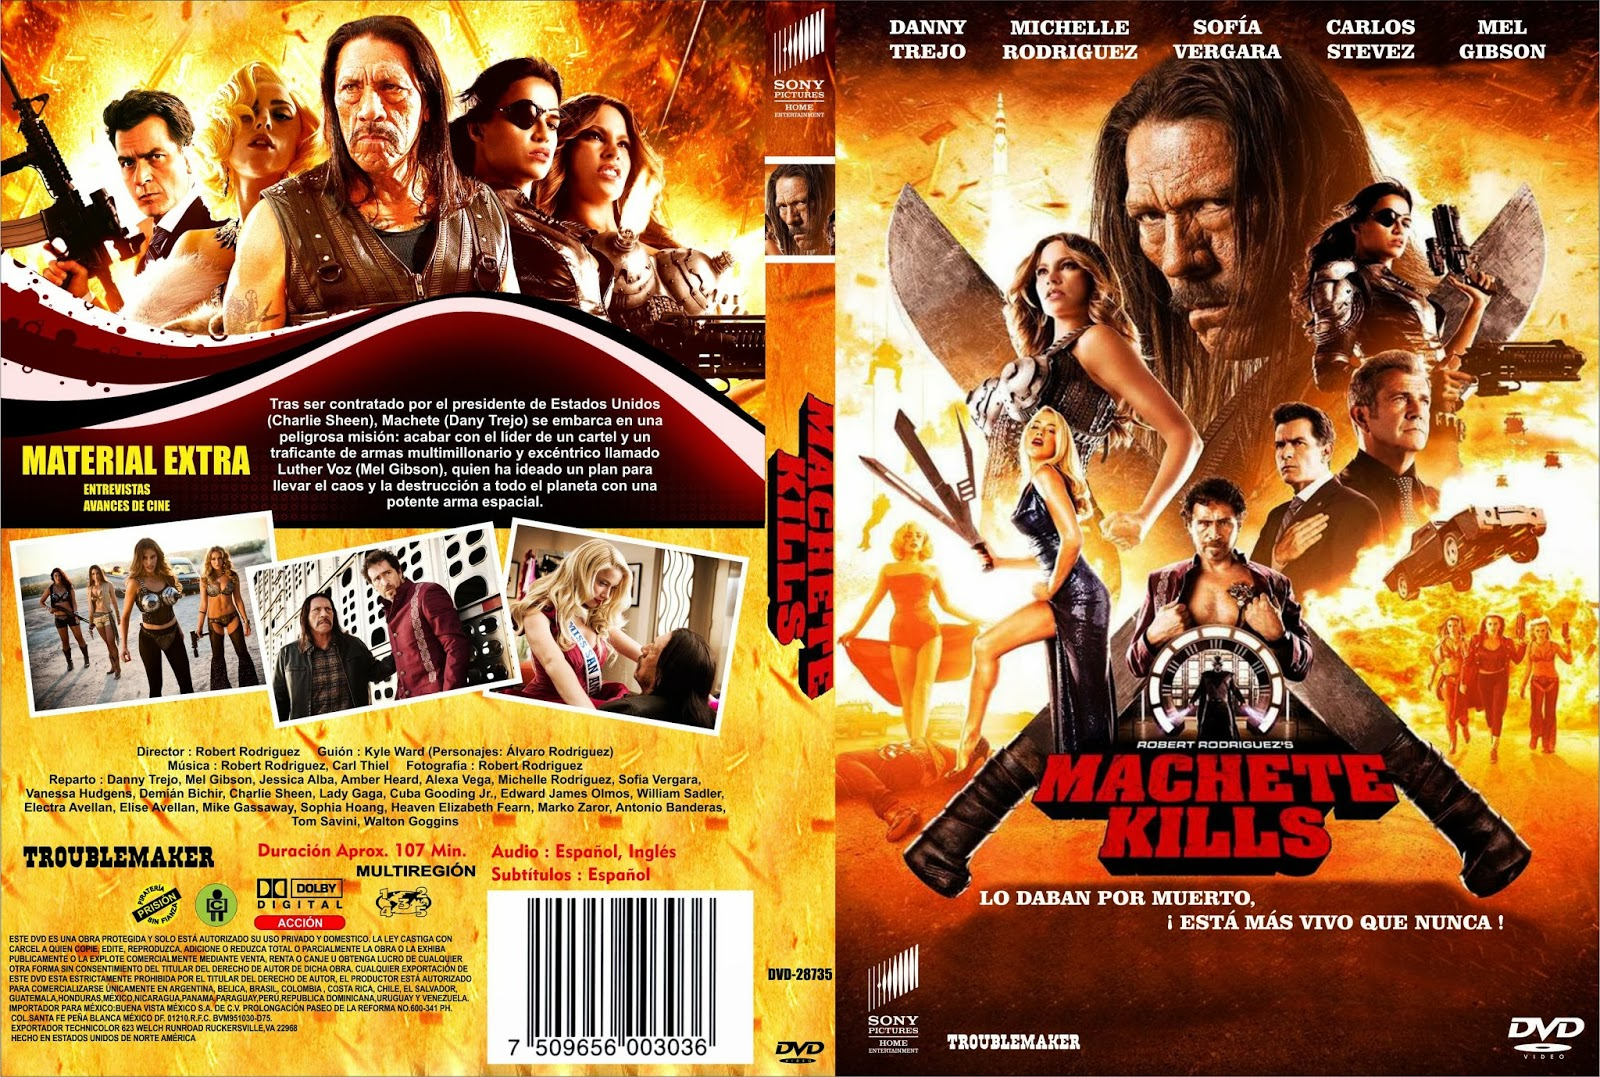 Machete Mata BDRip XviD Dual Áudio MACHETE 2BKILLS